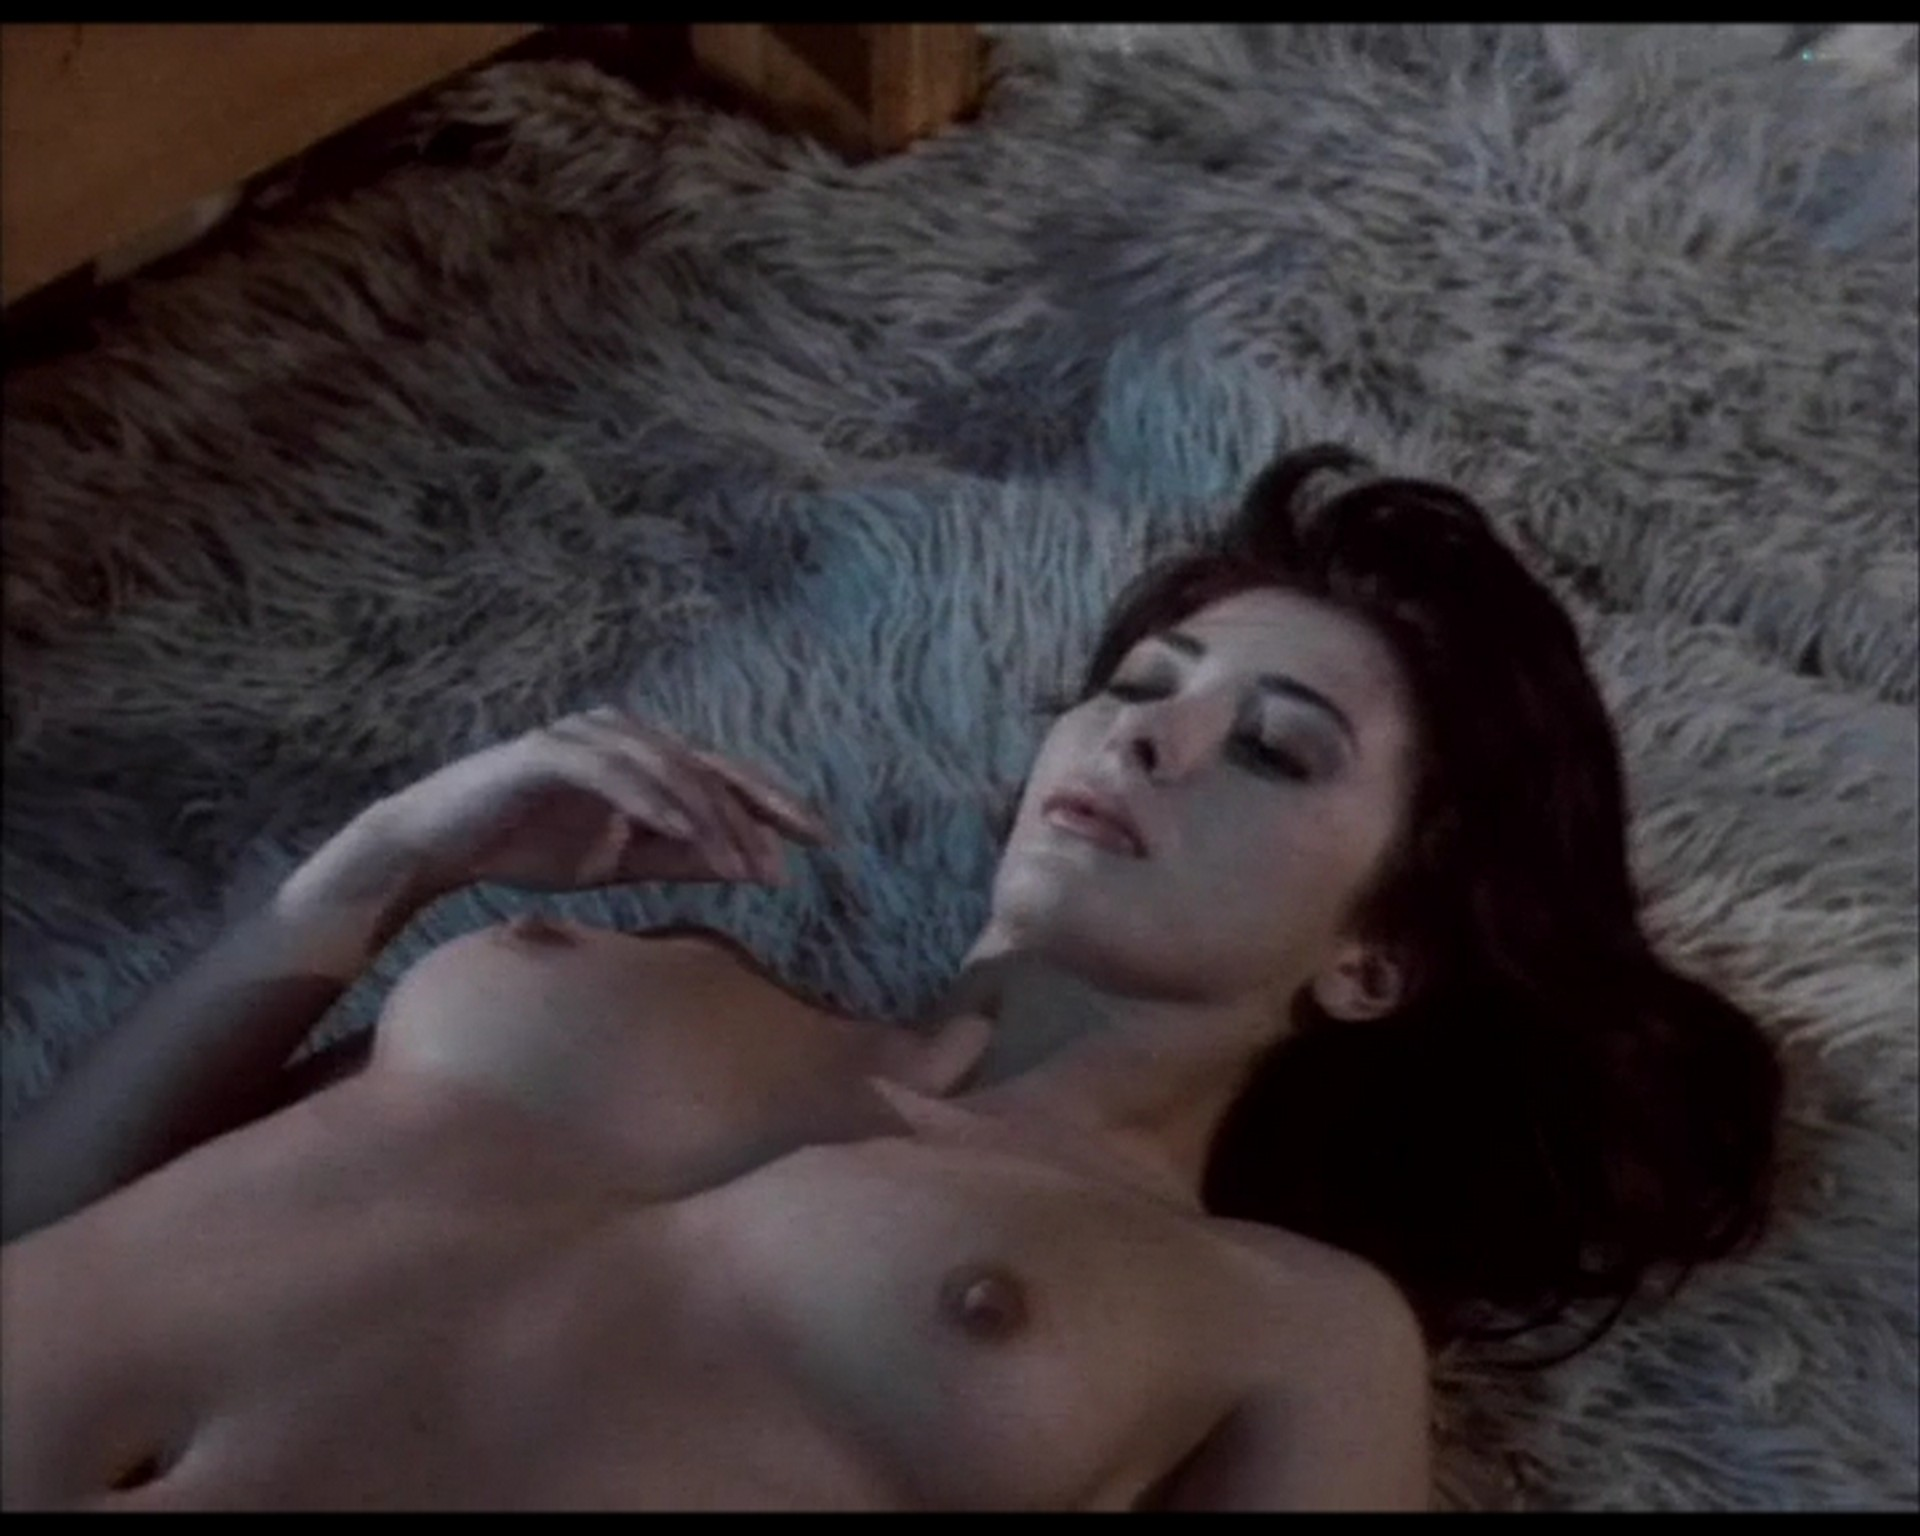 Malu nude full frontal Angeles Lopez Barea nude sex Scent of Passion 1991 011